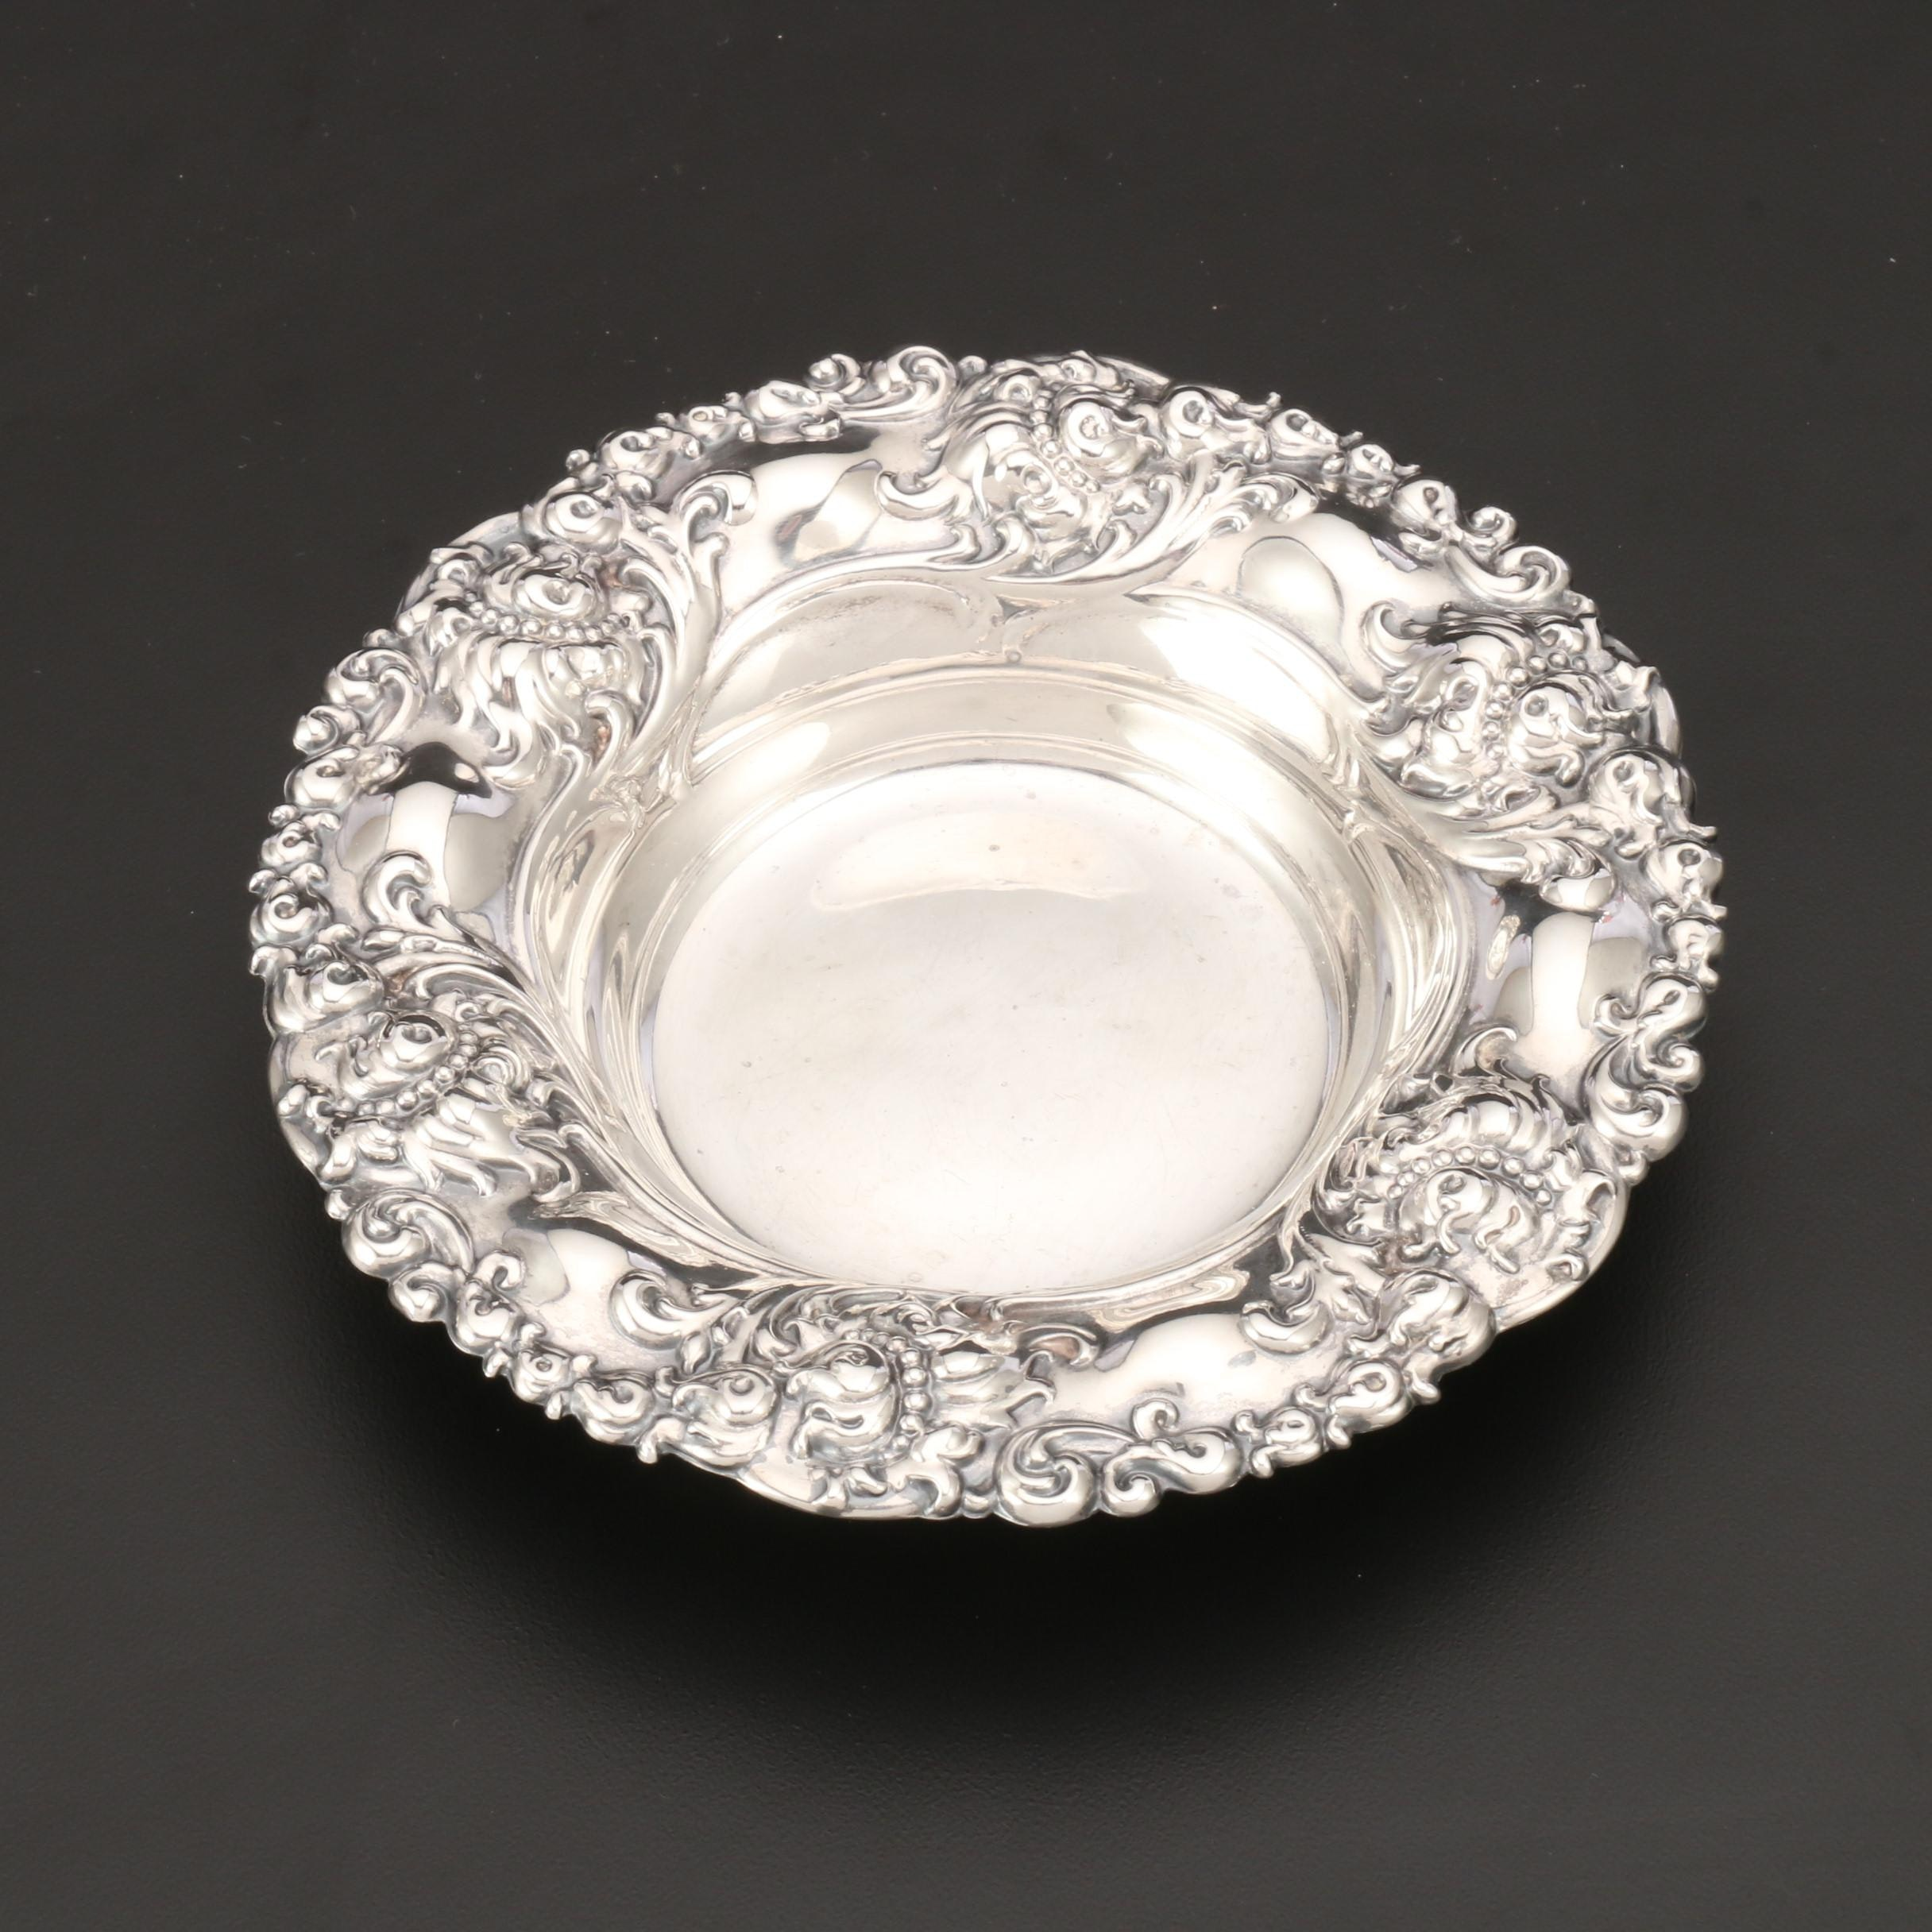 Sterling Silver Repoussé Bowl by Alvin Manufacturing Co.